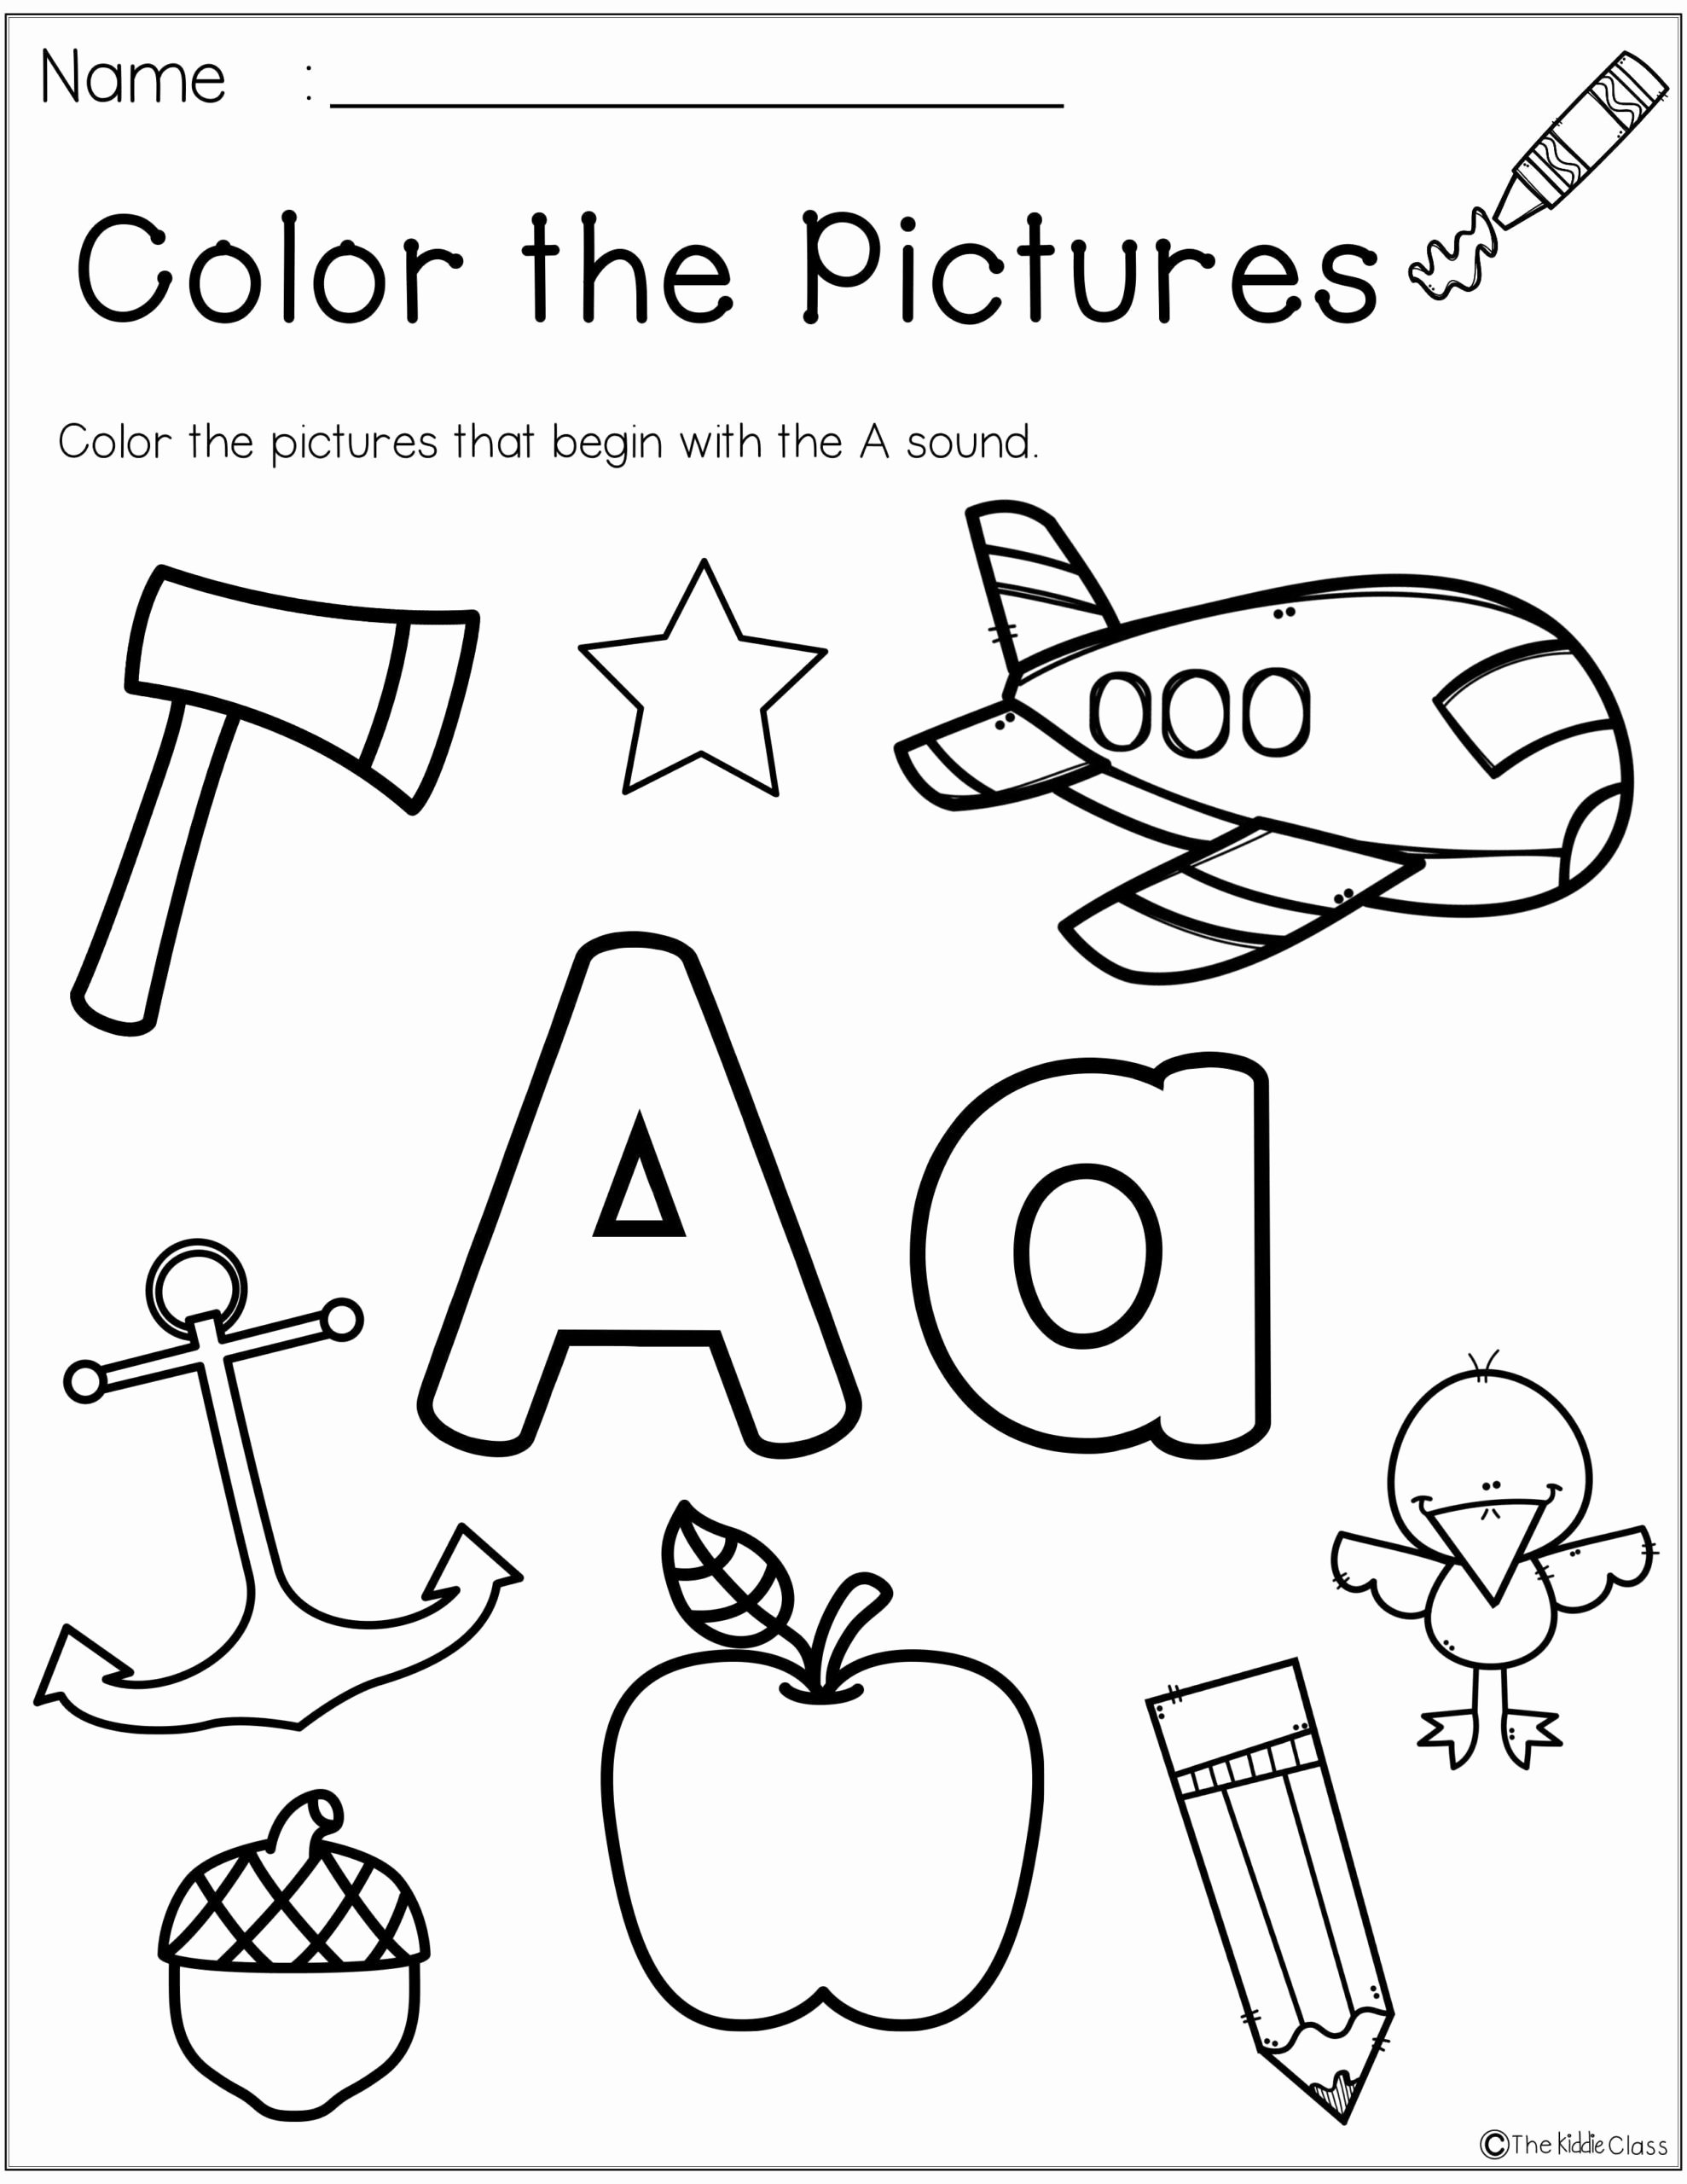 Phonics Worksheets for Preschoolers Awesome Worksheets Preschool Spelling Worksheets Worksheet Train